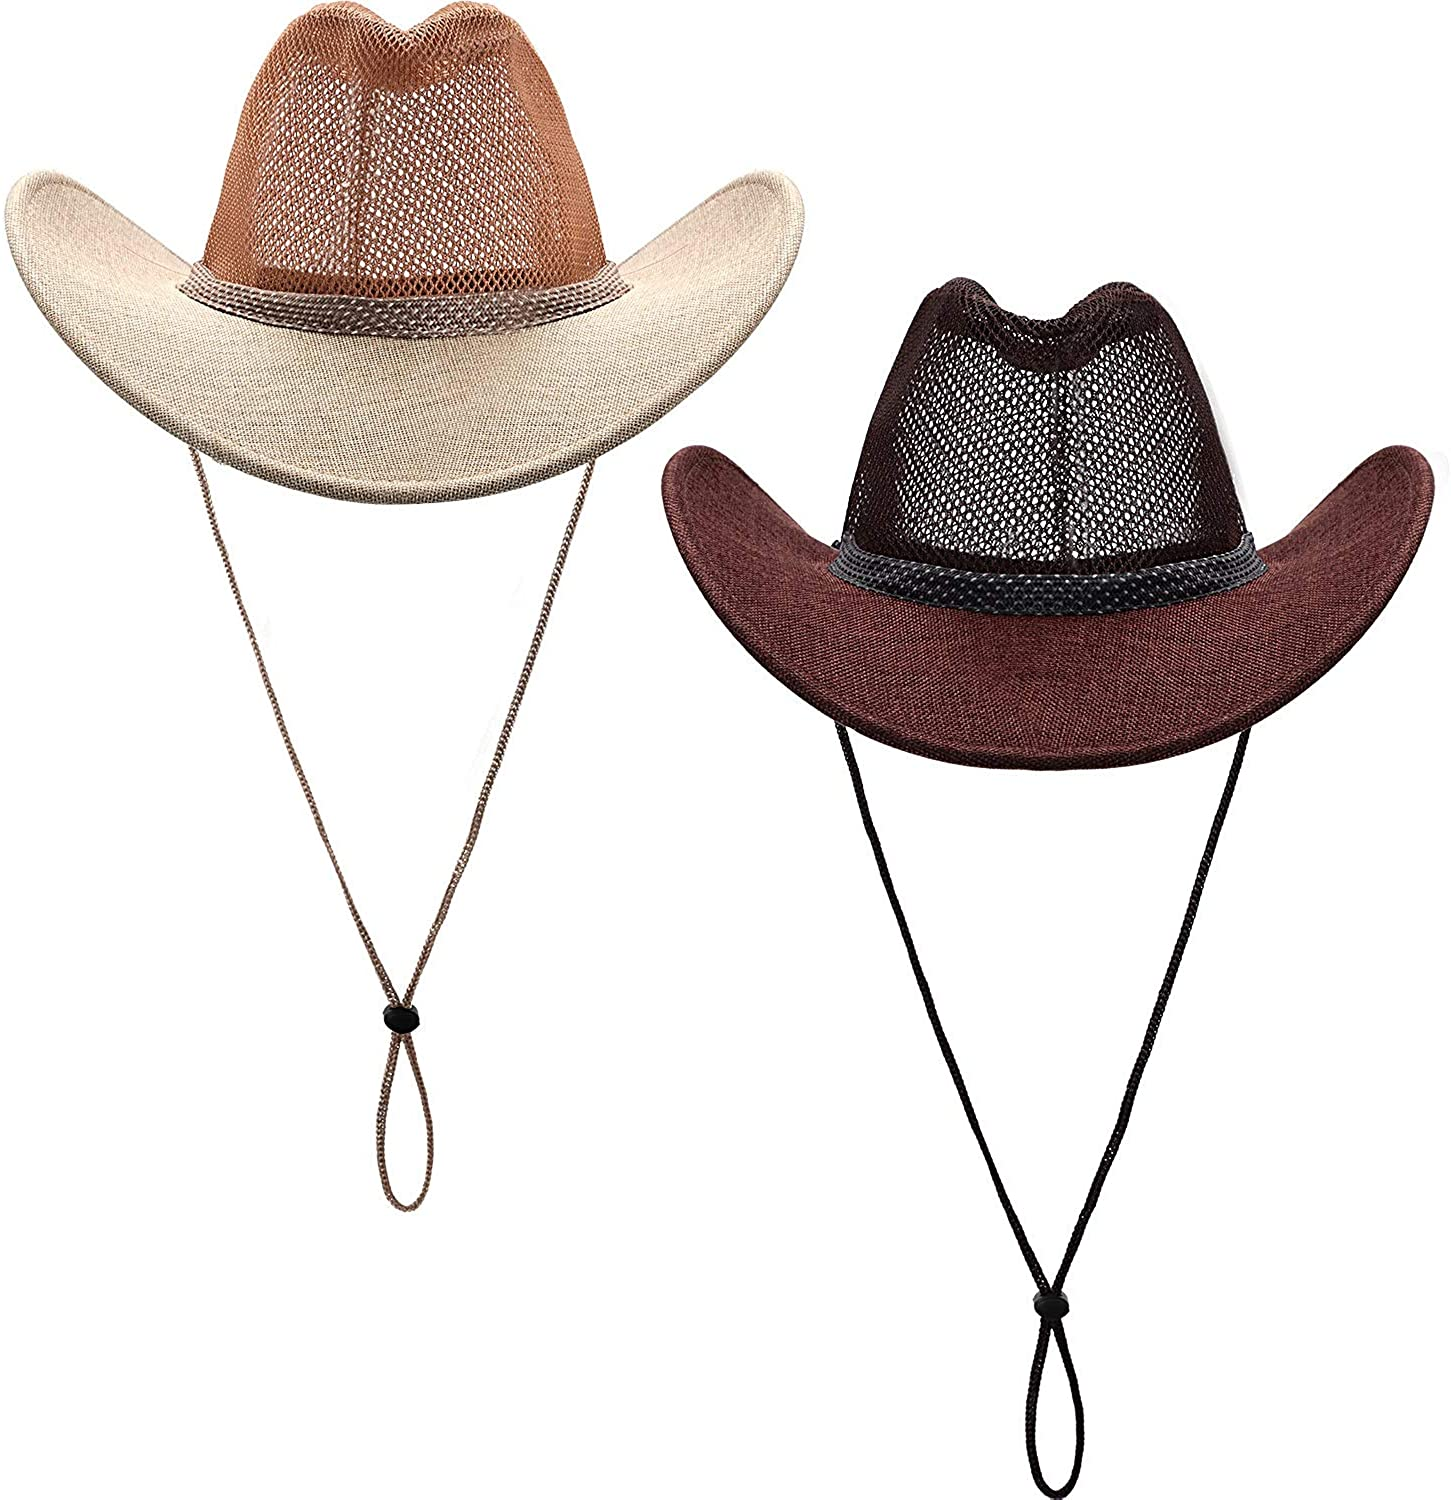 2 Pieces Mesh Safari Hats Twill-and-Mesh Sun Hats Mesh Covered Hats for Unisex